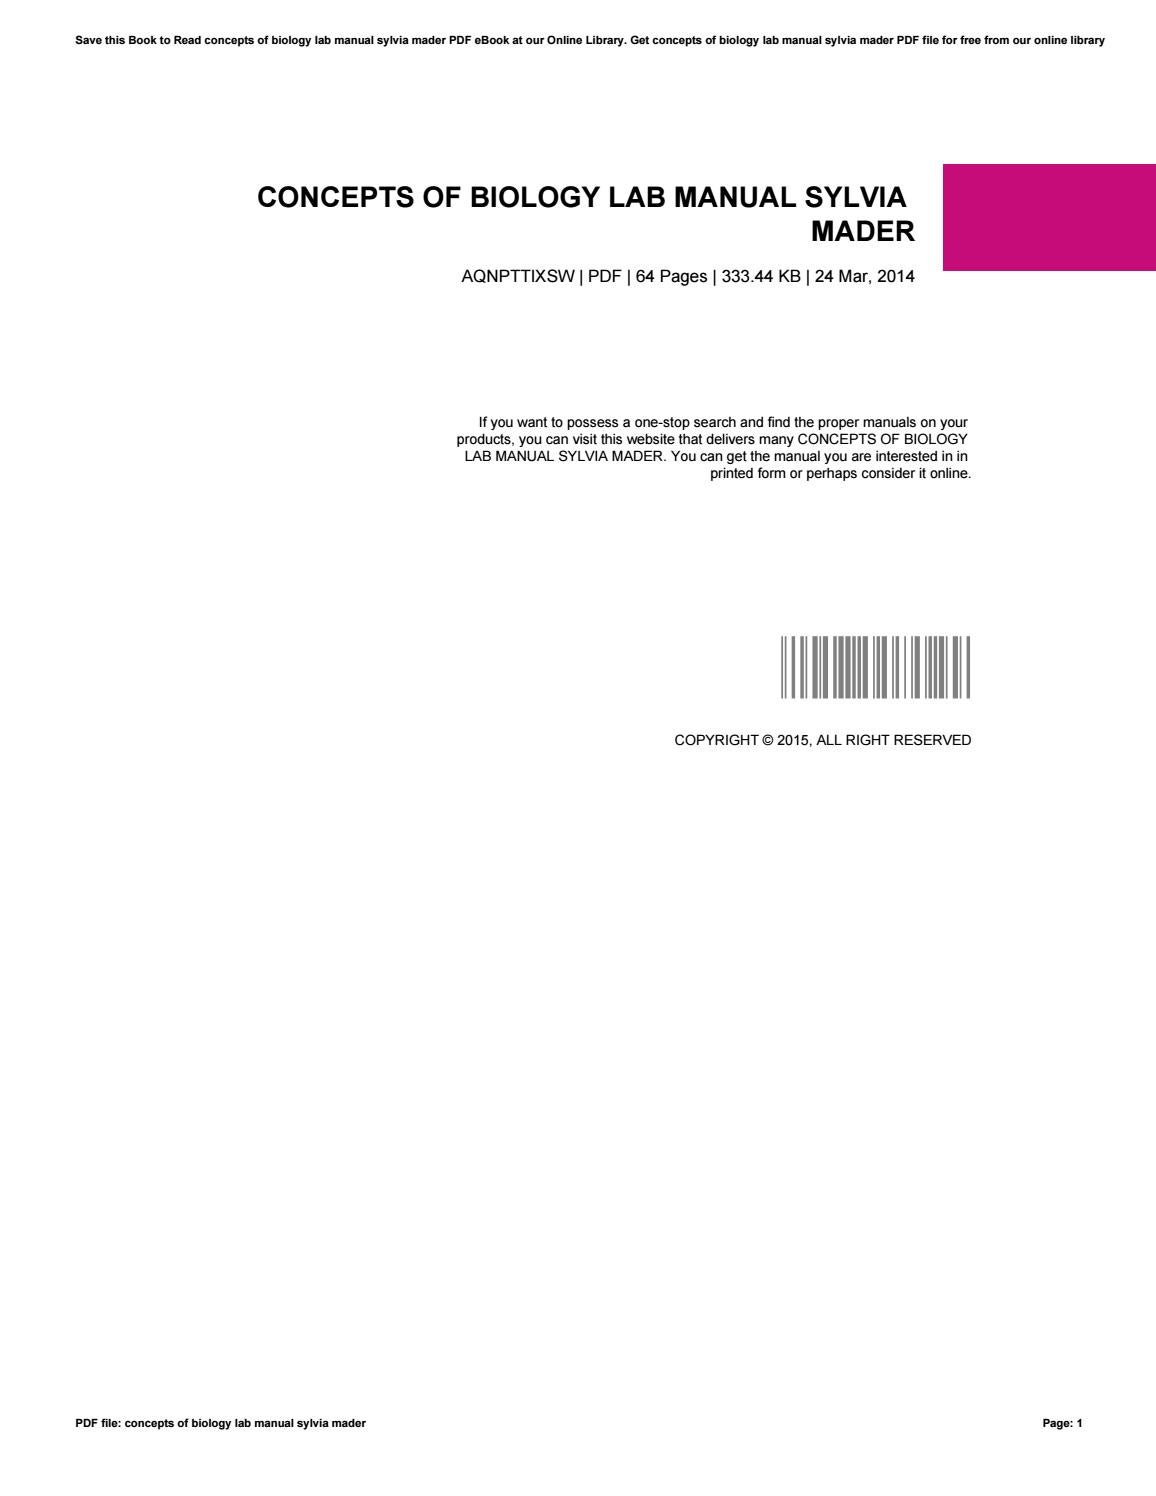 Concepts of biology lab manual sylvia mader by AlbertaMcCormick3077 - issuu